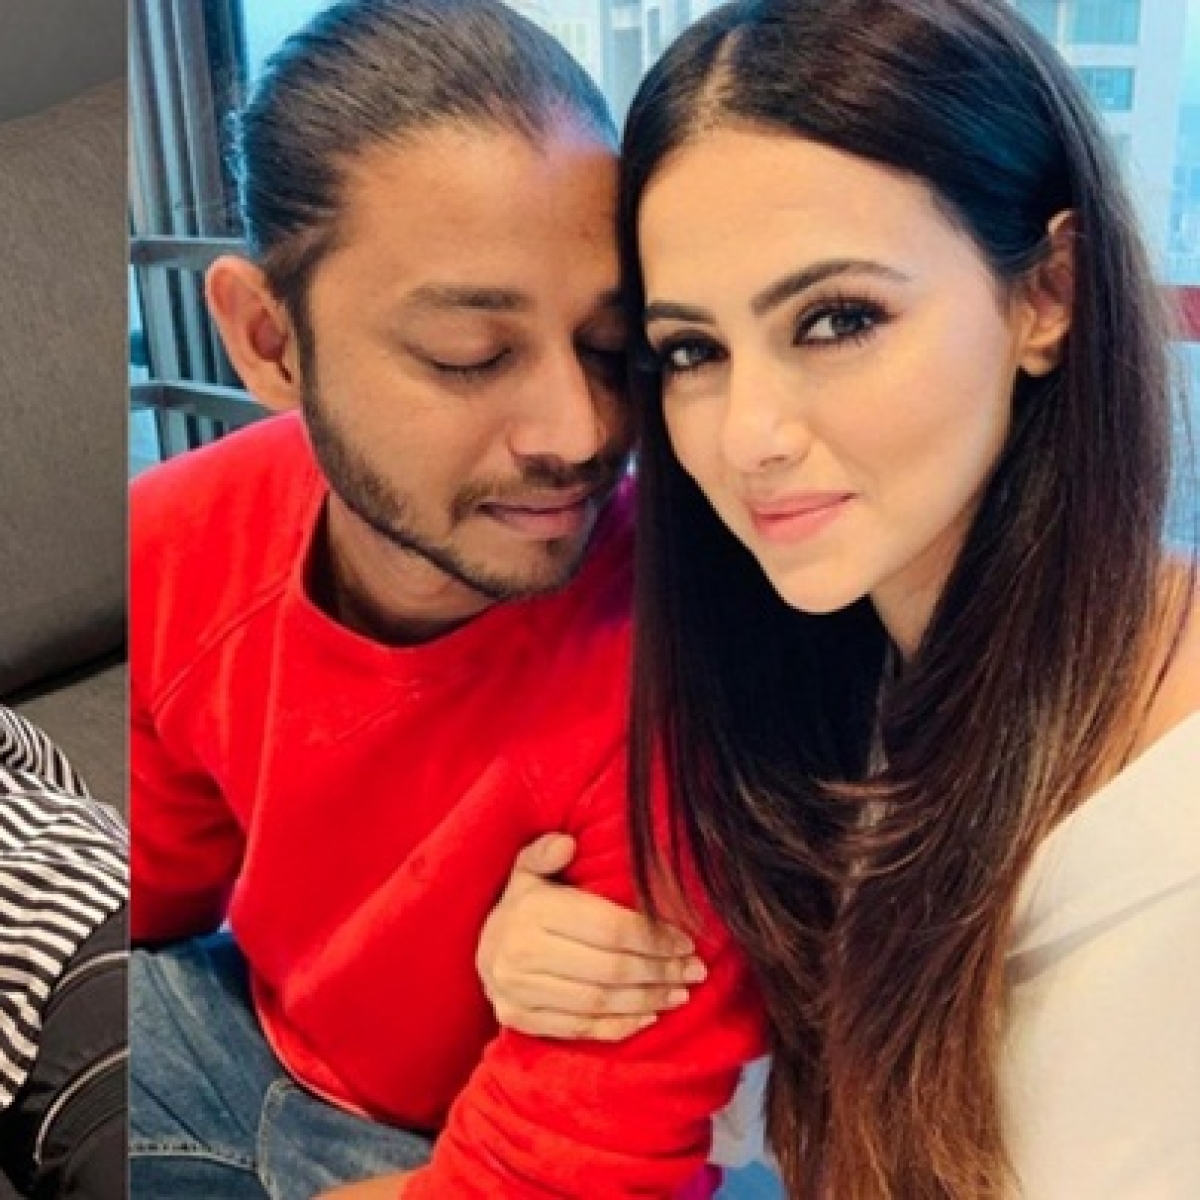 Did Sana Khan break up with choreographer Melvin Louis over cheating scandal?